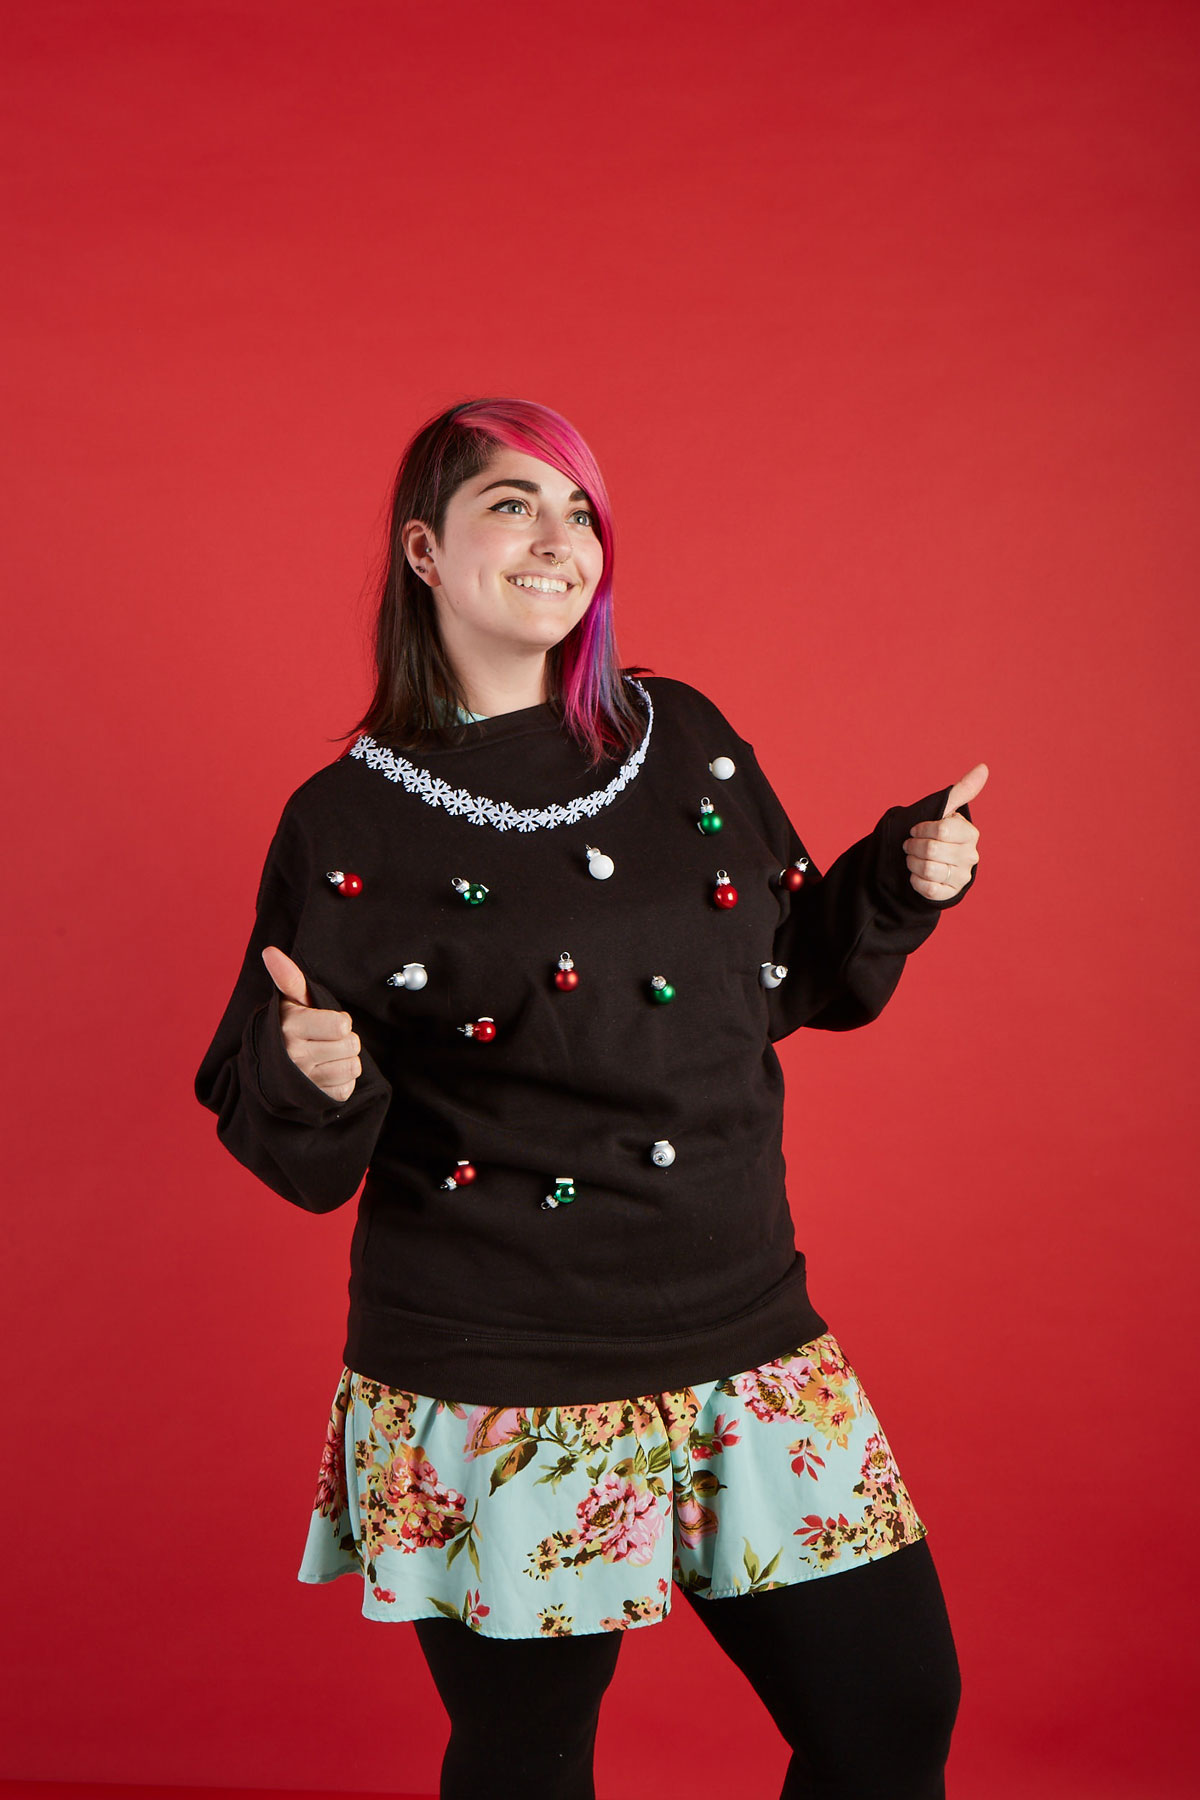 woman wearing xmas sweaters with tiny ornaments